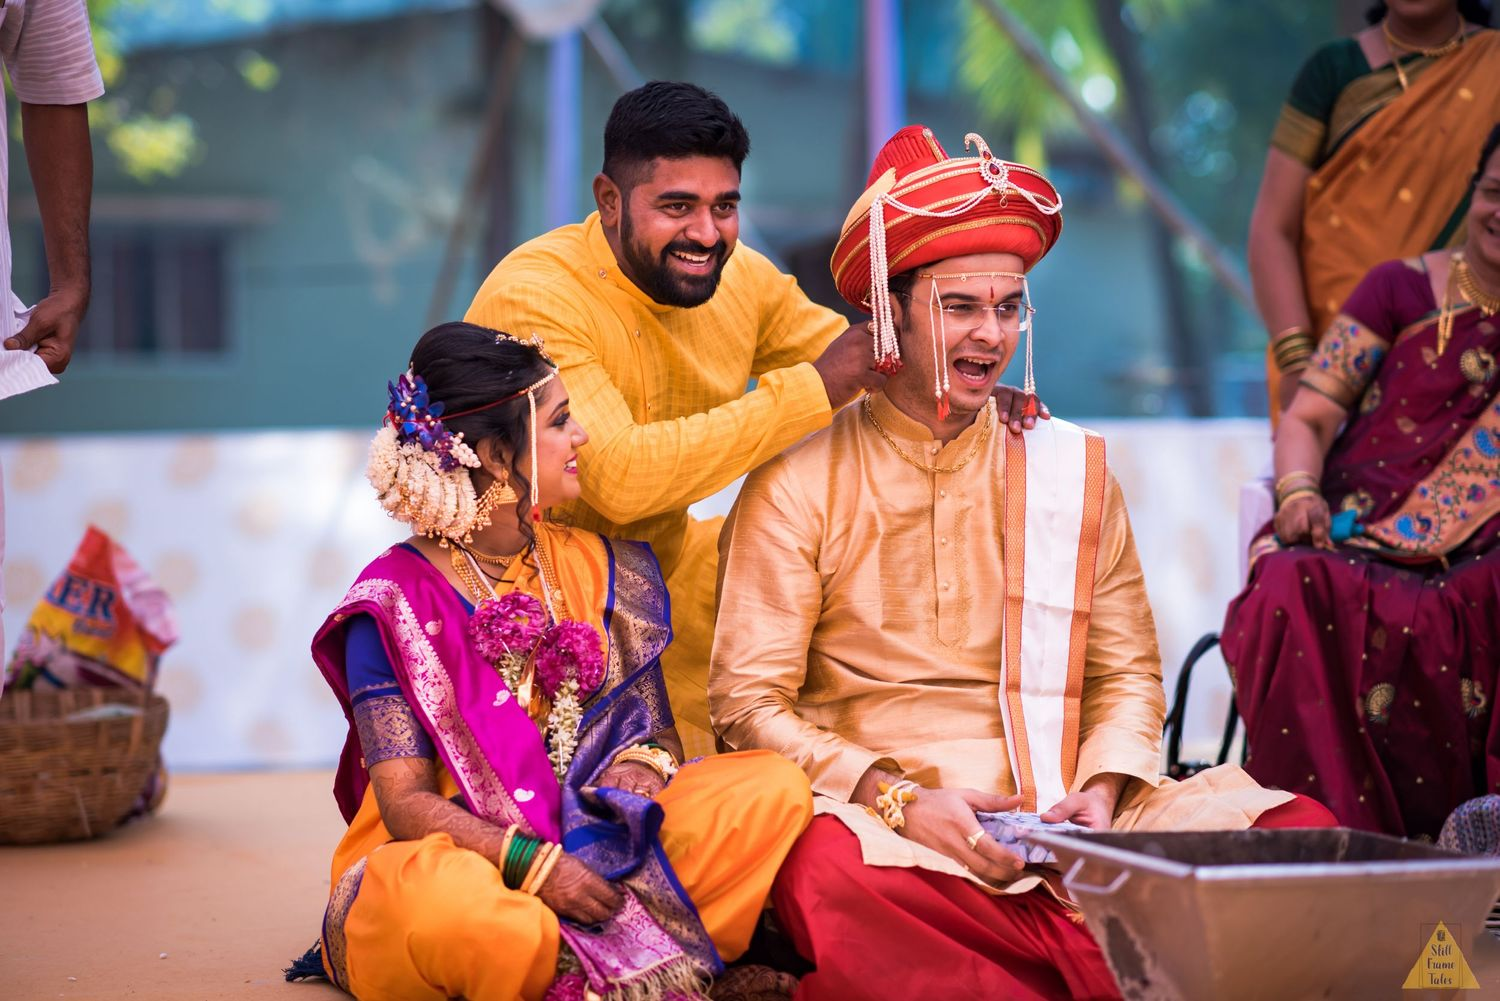 Bride's brother performing a fun wedding ritual on groom at a destination wedding